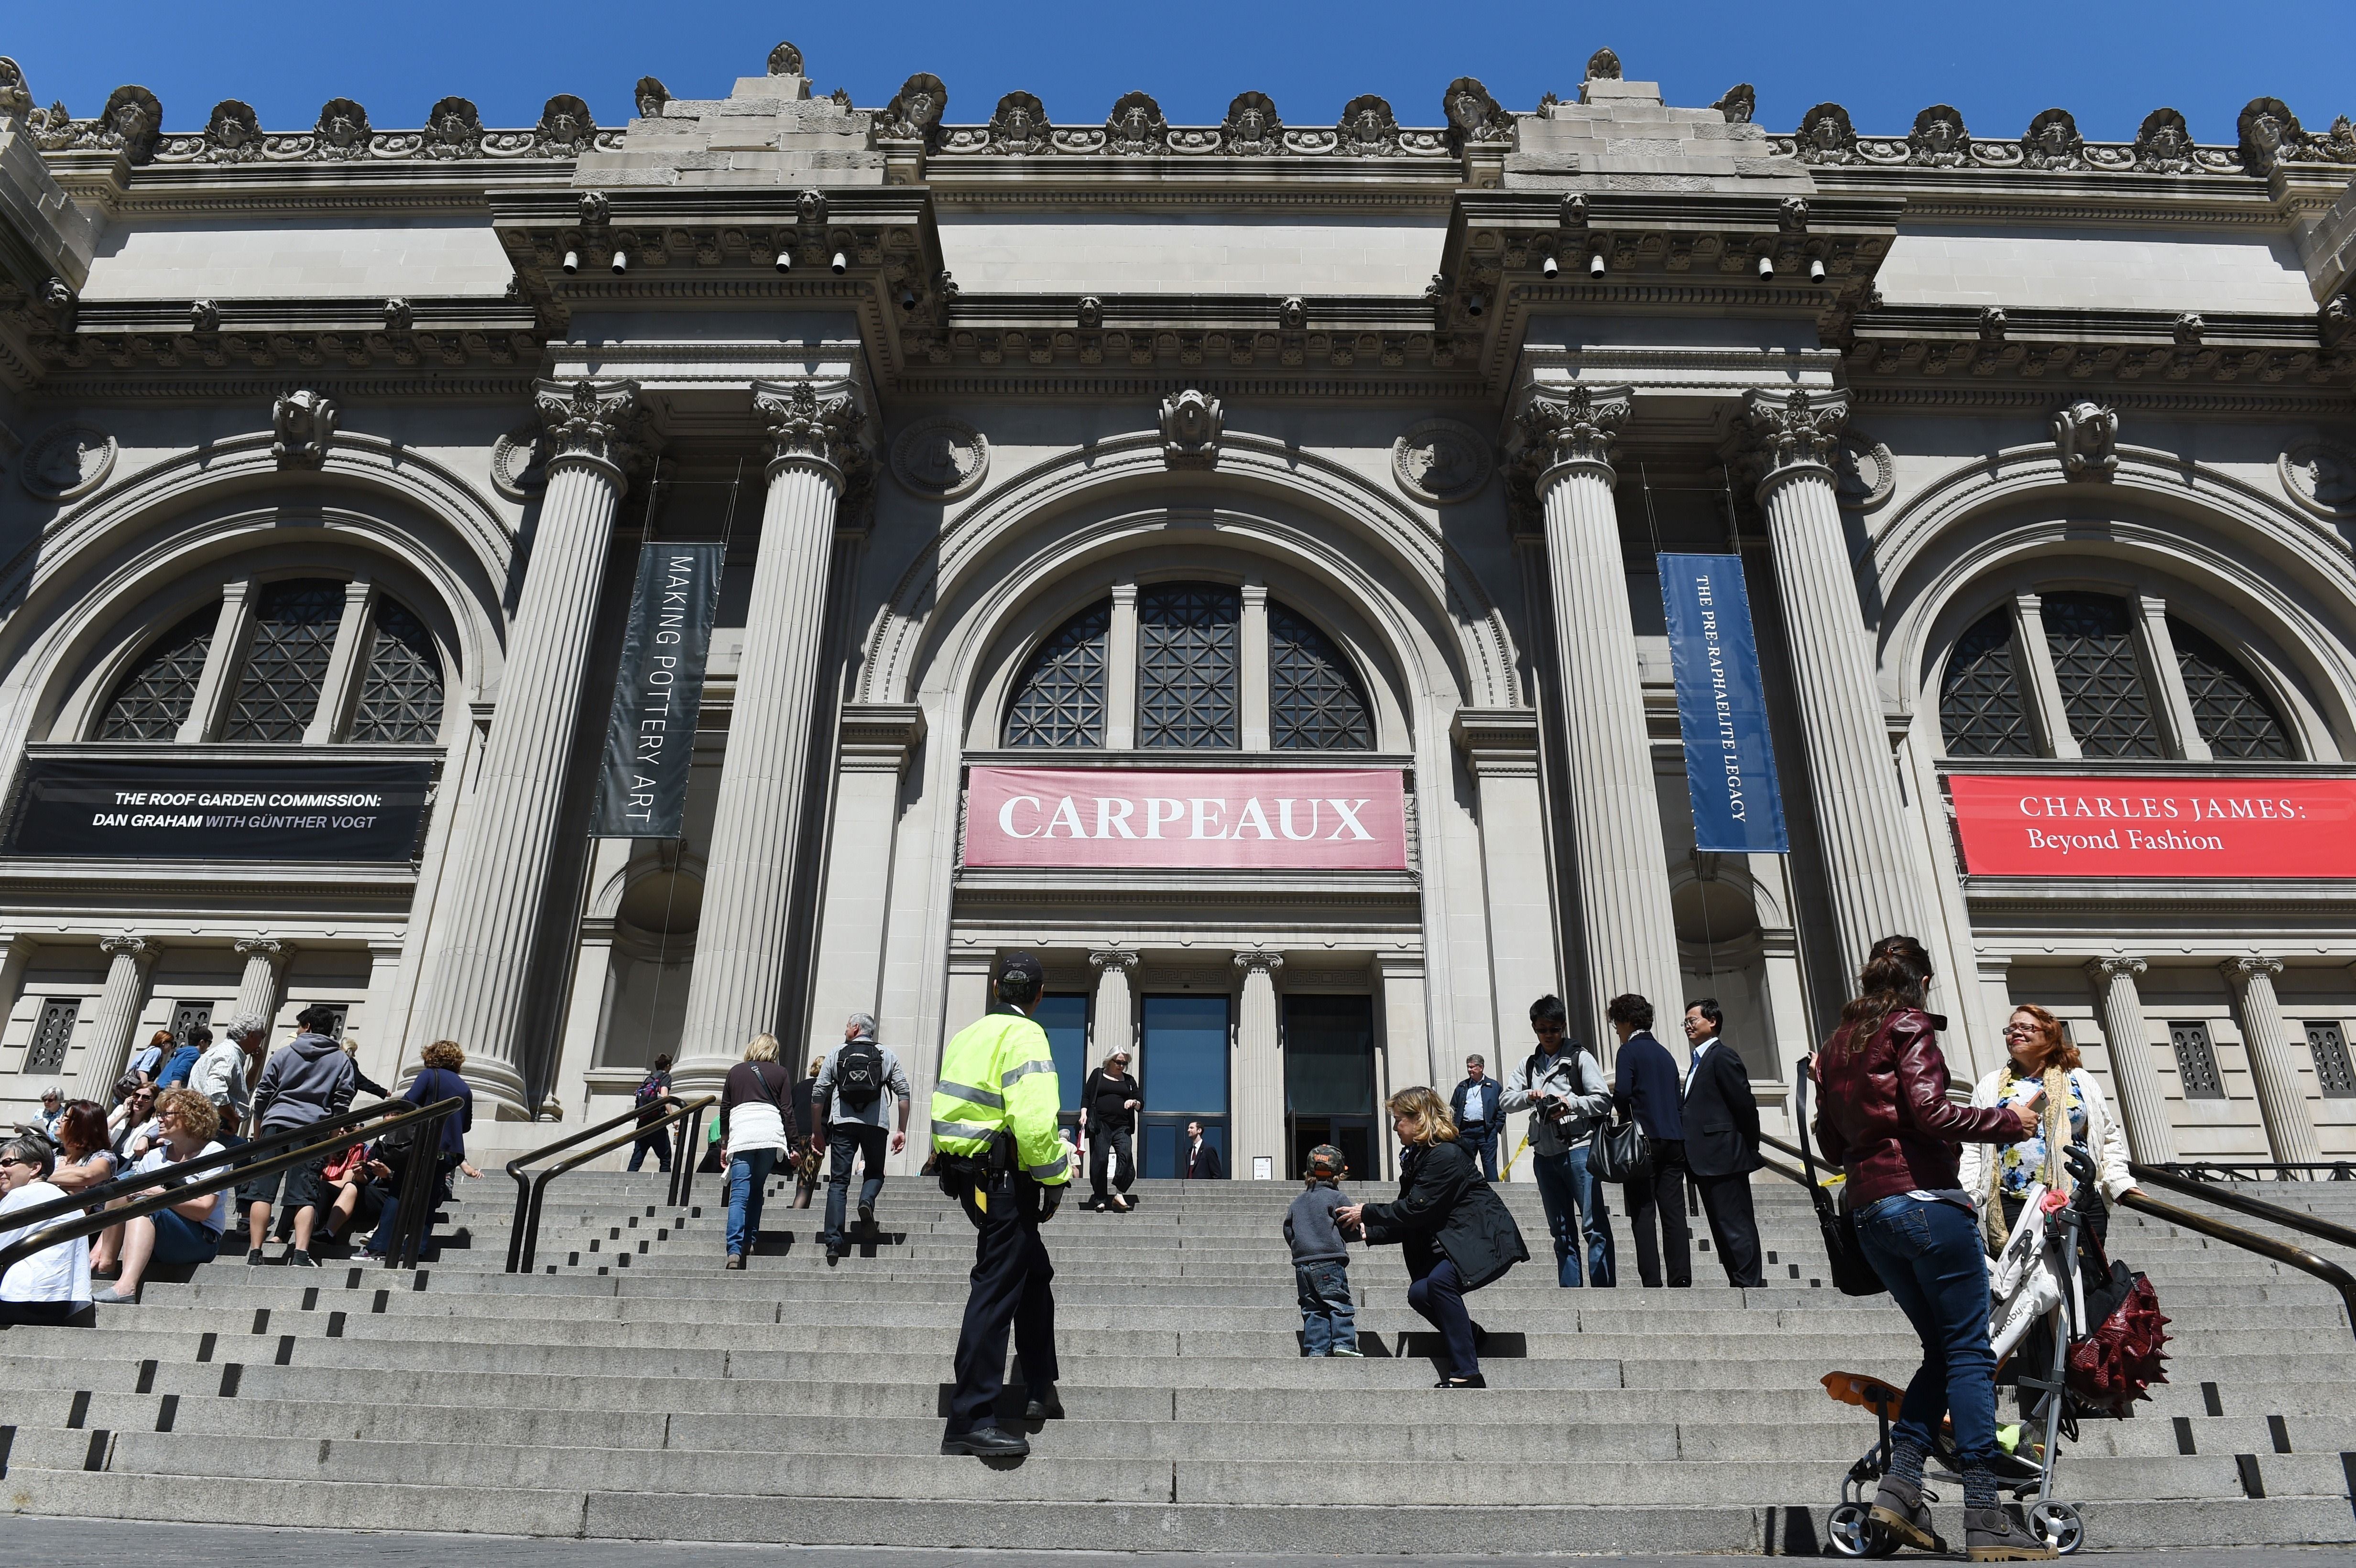 The front steps and entrance to The Metropolitan Museum of Art May 19, 2014 in New York. (STAN HONDA/AFP/Getty Images)